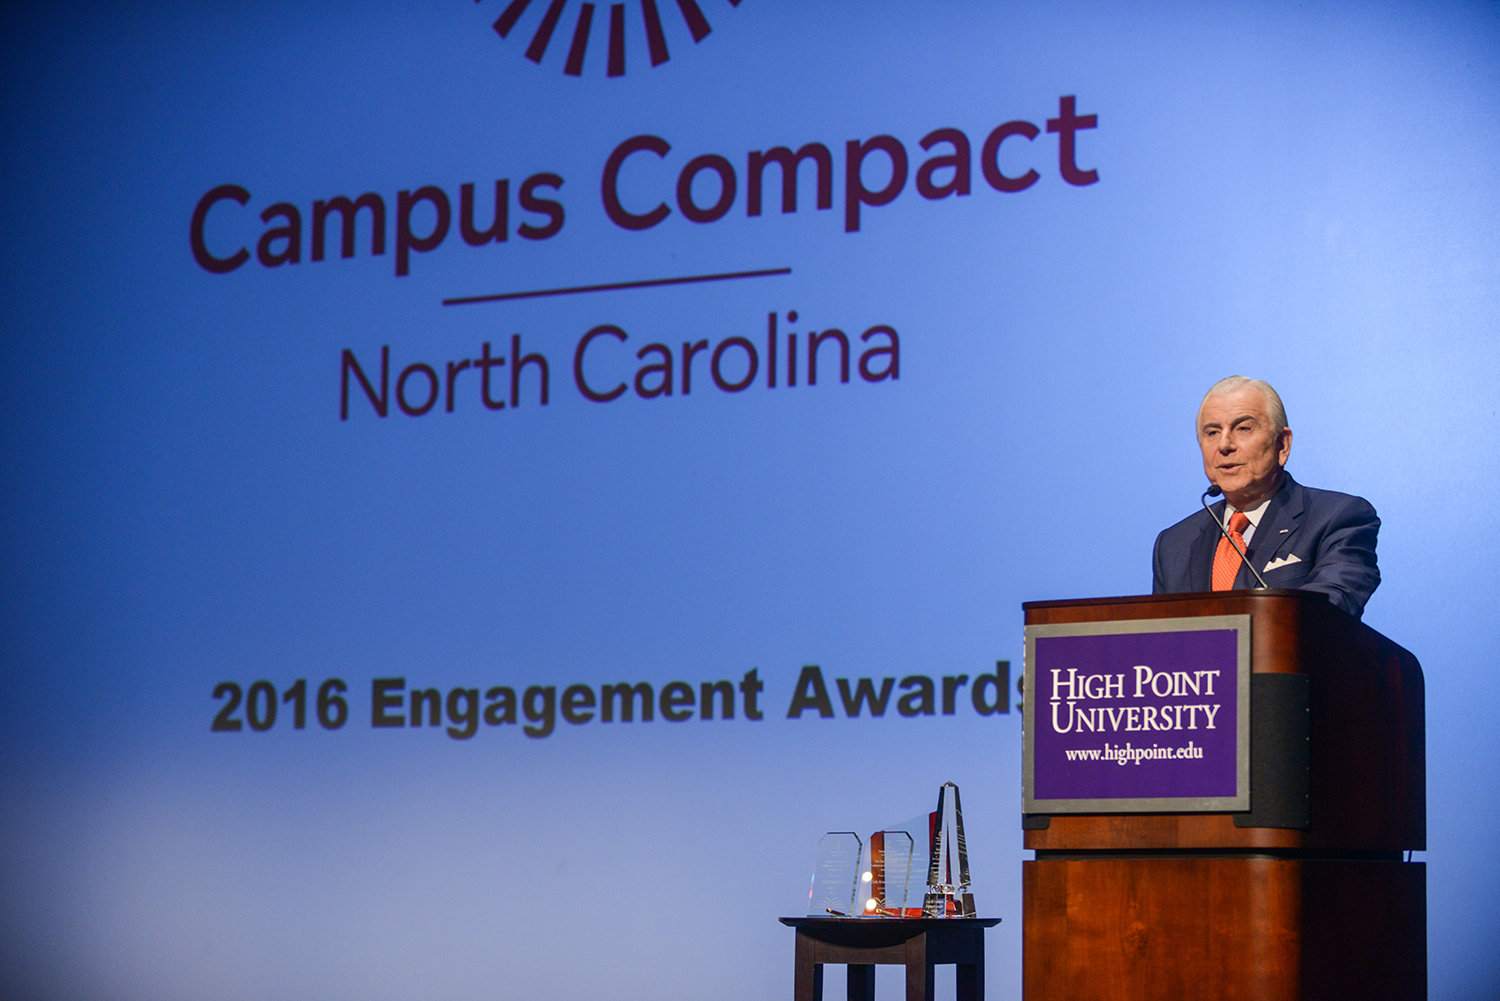 HPU President Dr. Nido Qubein hosted the Engagement Awards ceremony, held in the Hayworth Fine Arts Center.